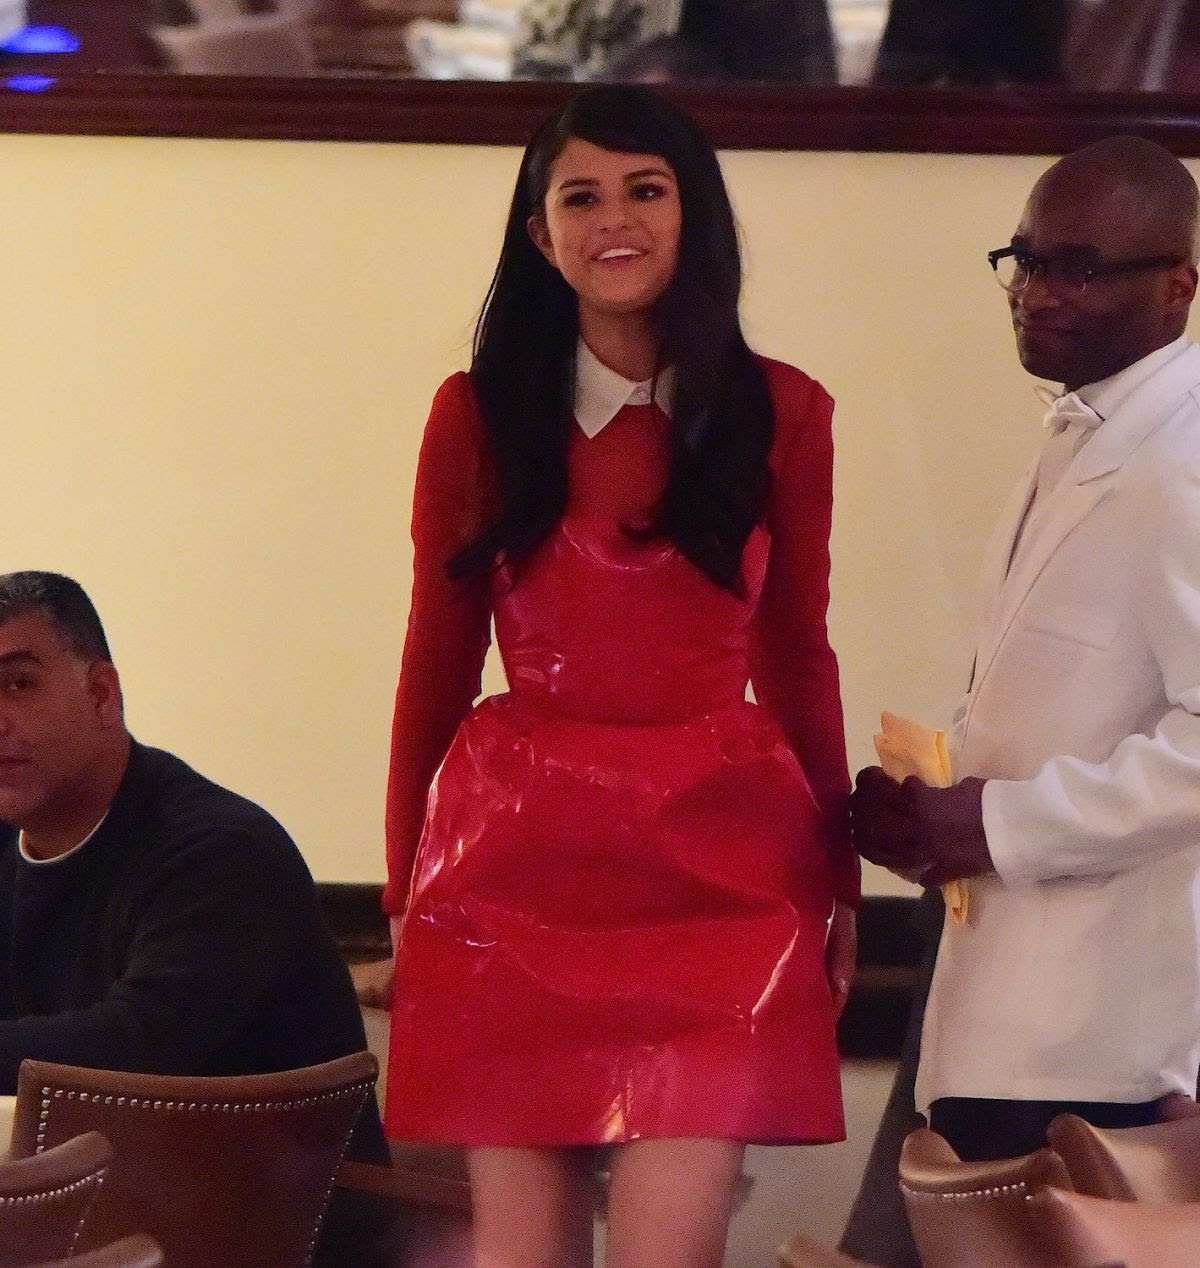 SELENA GOMEZ at Ciprianis in New York 11/009/2015